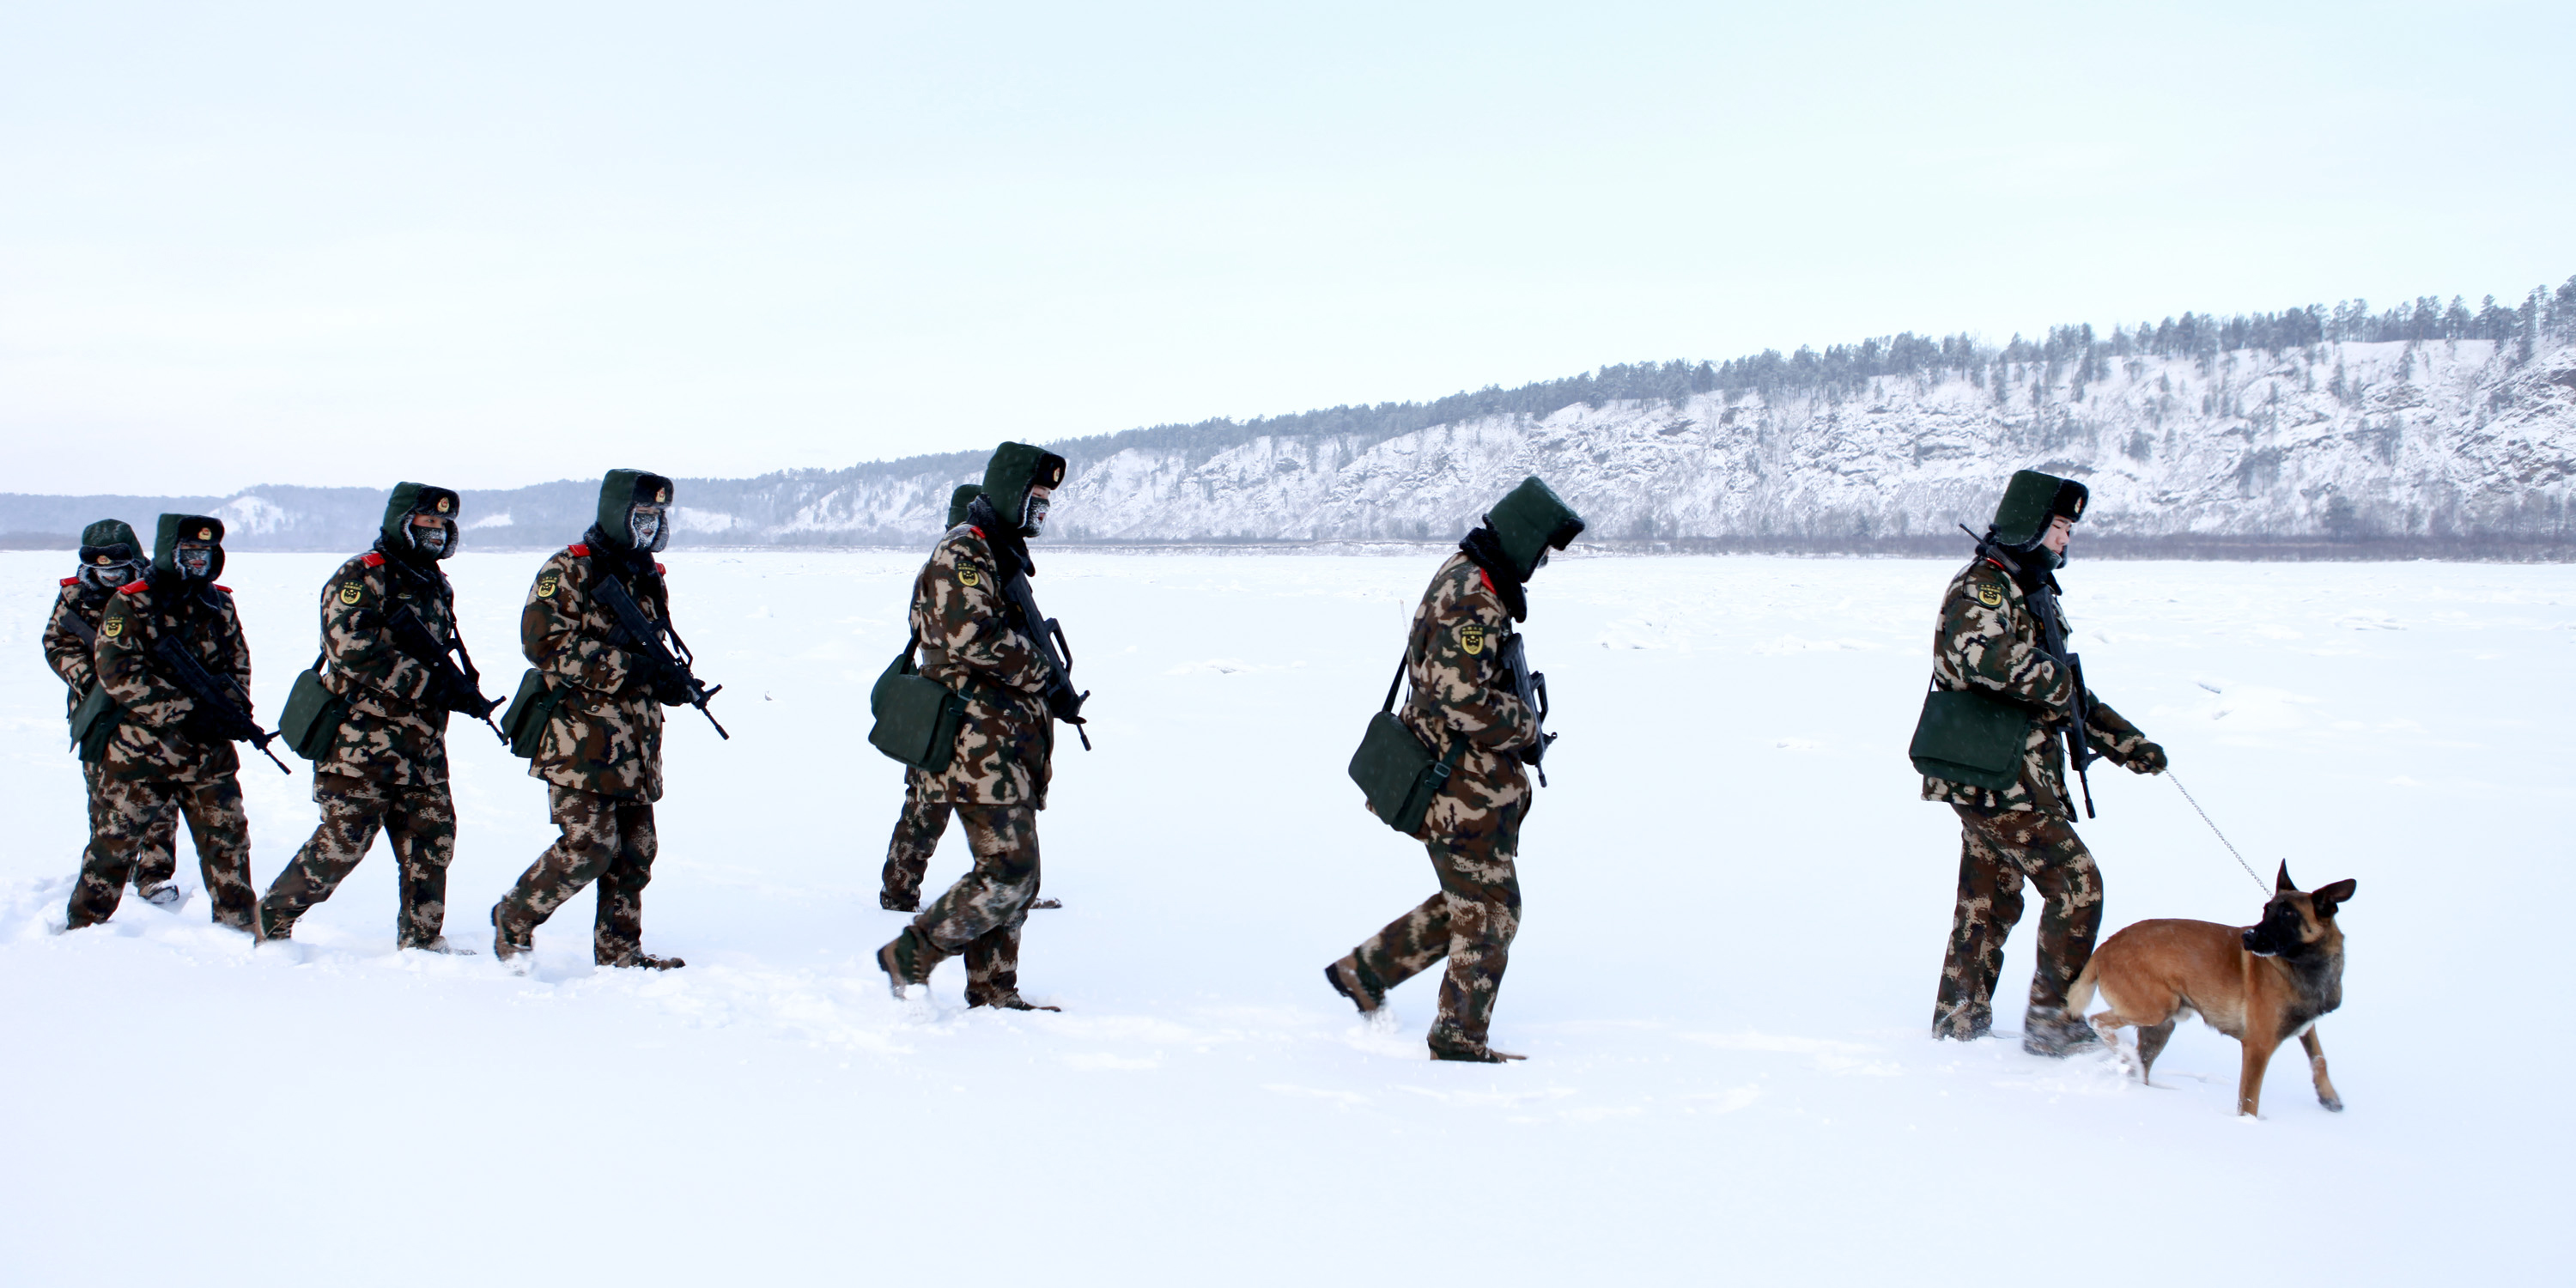 Chinese paramilitary police border guards train in the snow at Mohe County in China's northeast Heilongjiang province, on the border with Russia, on Dec. 12, 2016. Mohe is the northernmost point in China, with a subarctic climate. (STR/AFP via Getty Images)